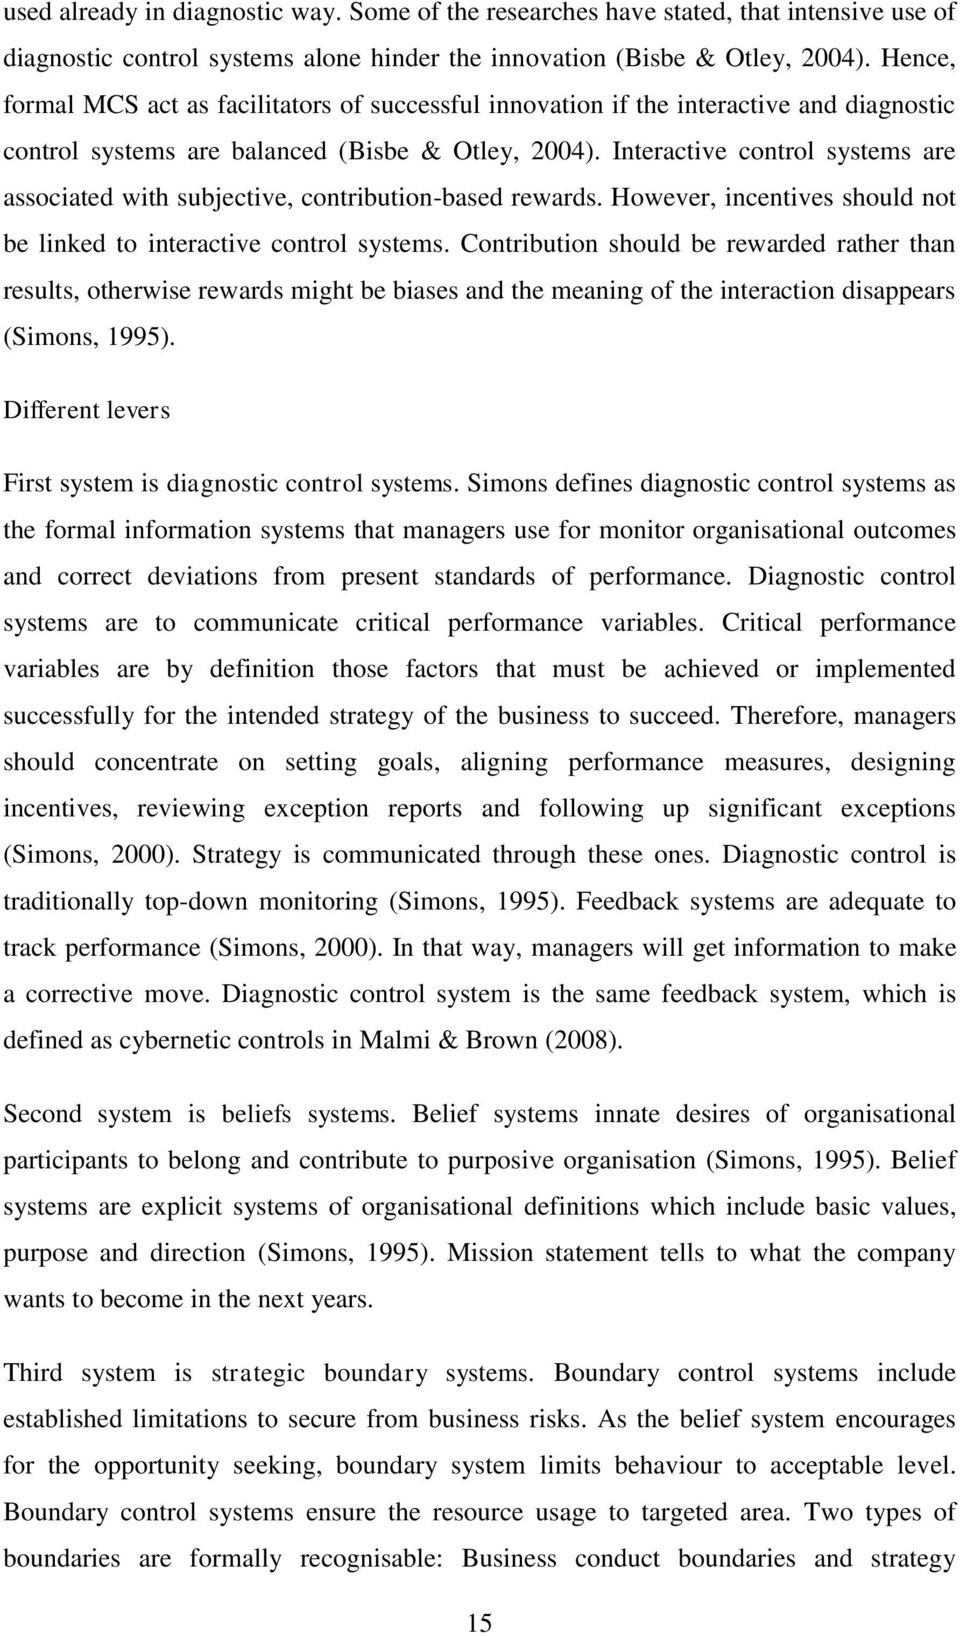 Interactive control systems are associated with subjective, contribution-based rewards. However, incentives should not be linked to interactive control systems.